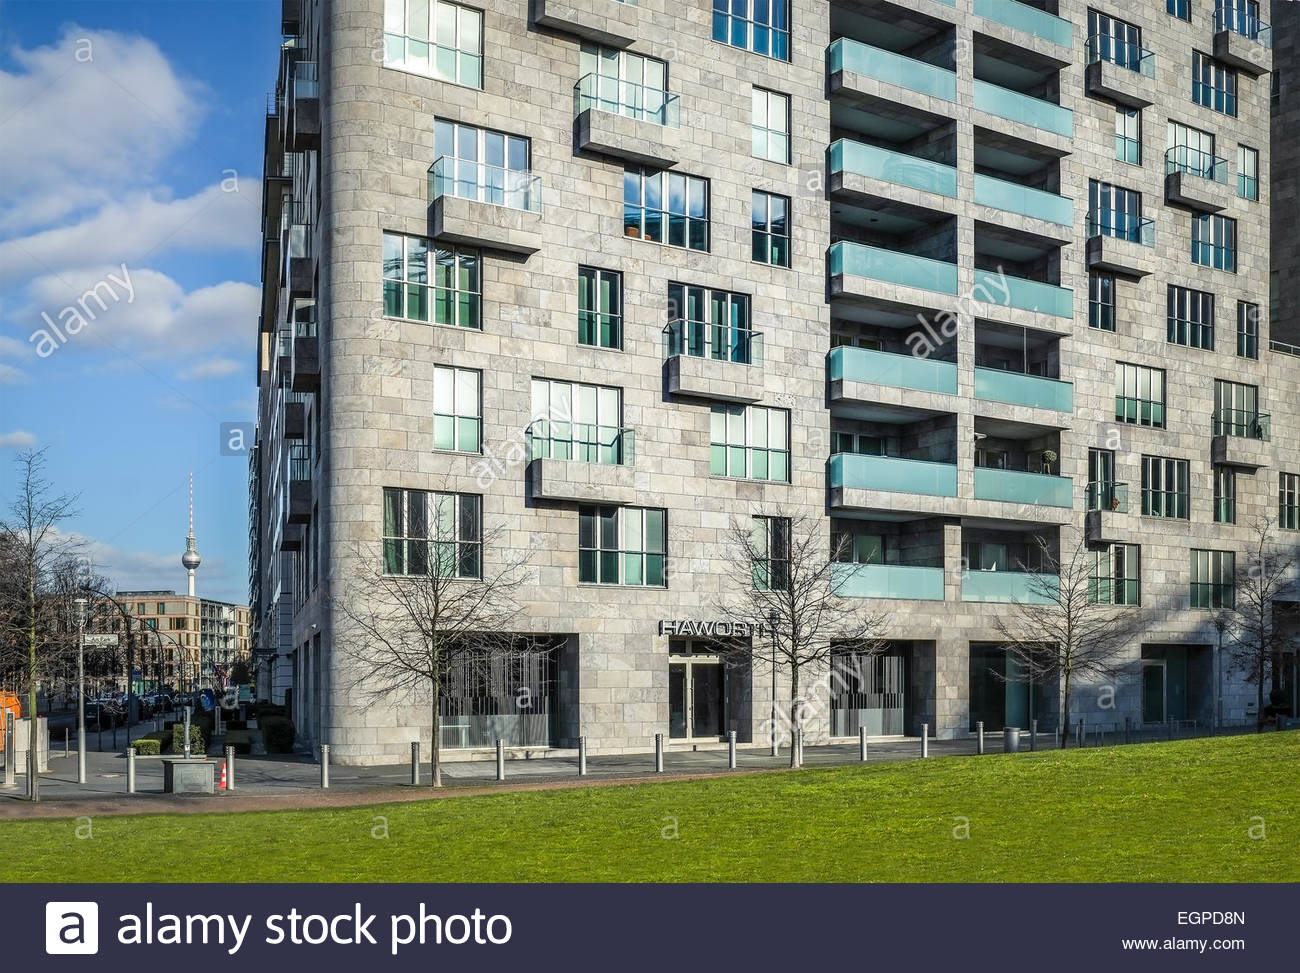 Apartment Building in Berlin, Germany - Stock Image